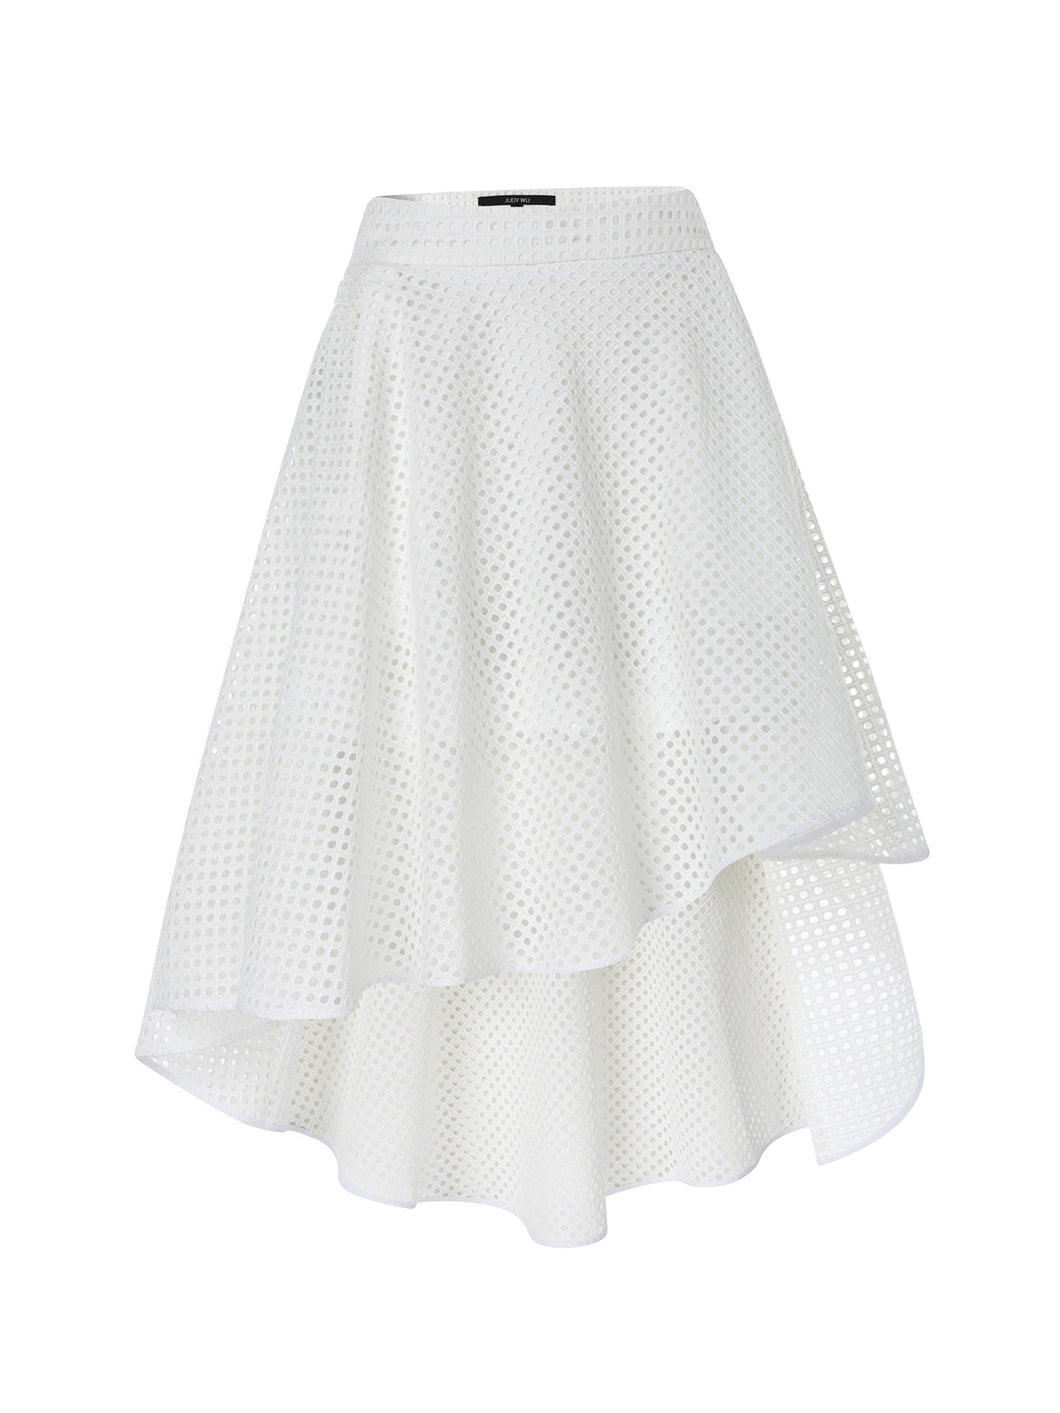 Broderie Anglaise Mini High Low Skirt in White